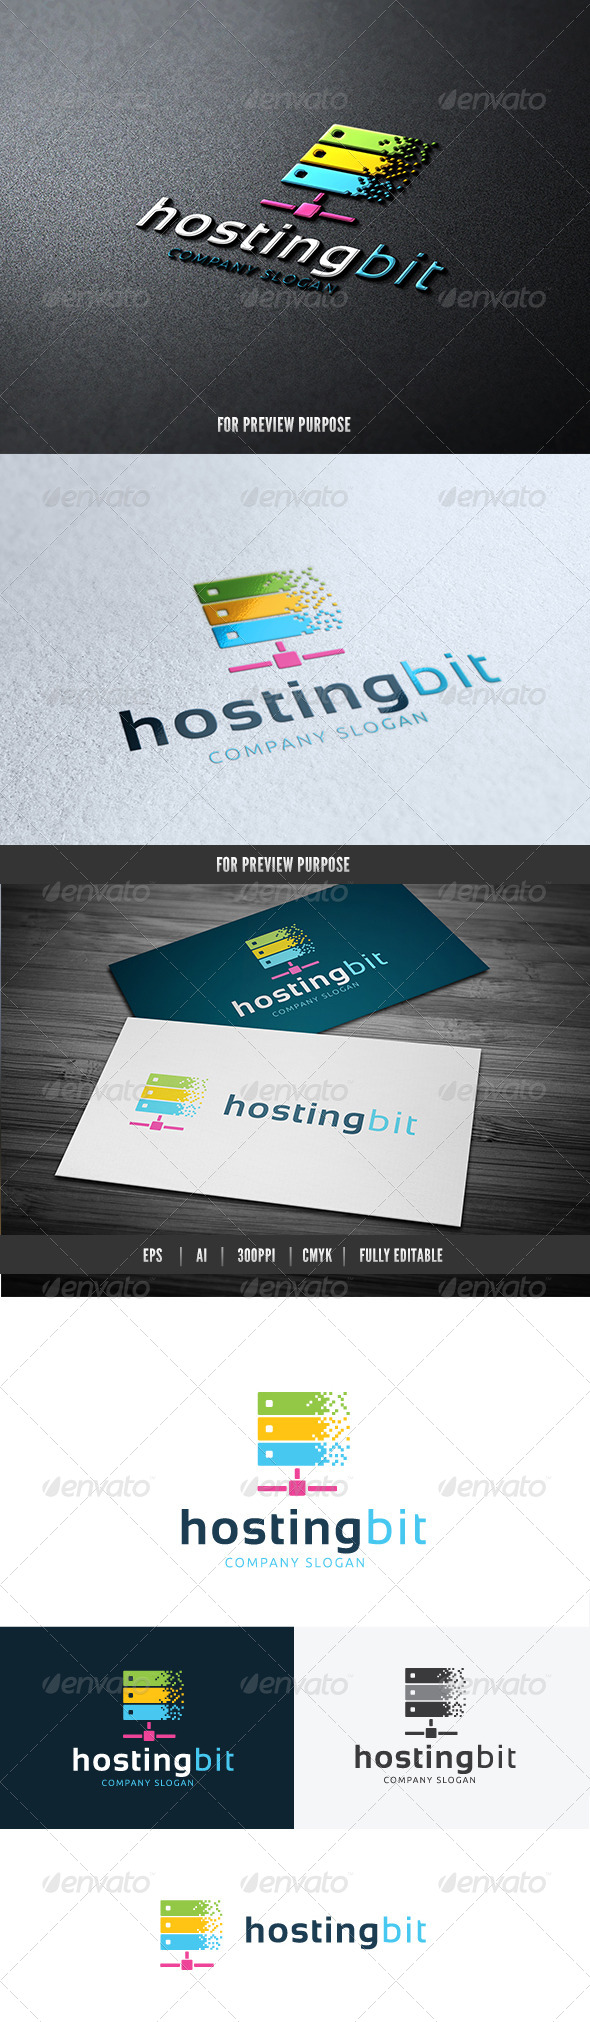 GraphicRiver Hosting Bit 7169180